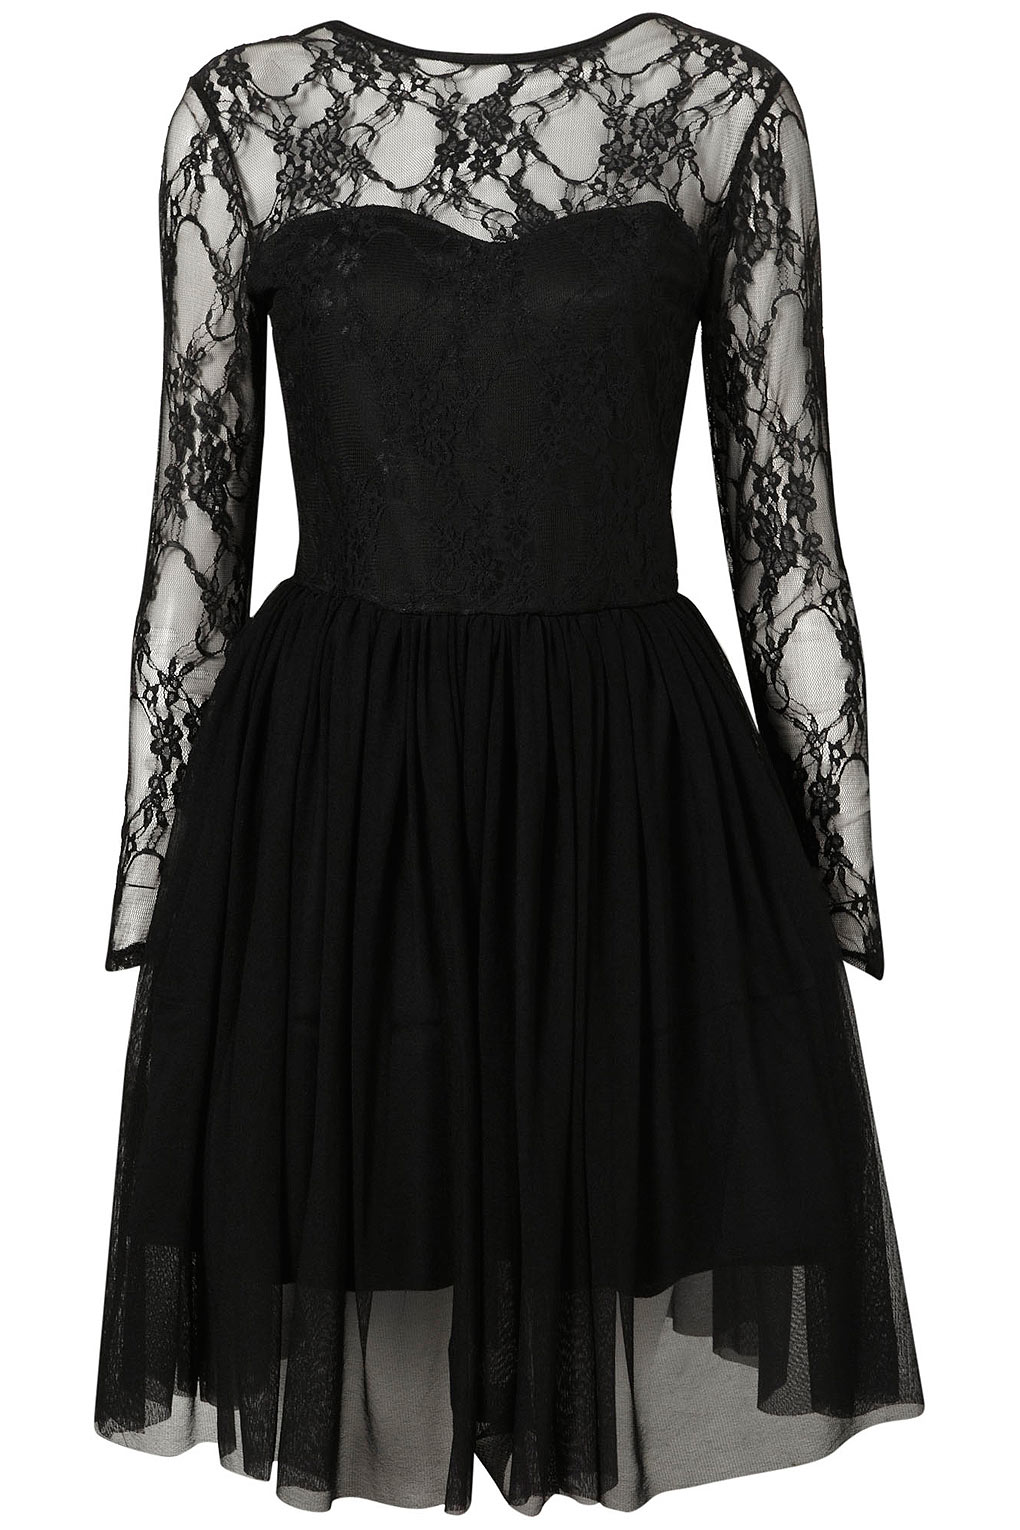 Black Lace Dress Topshop